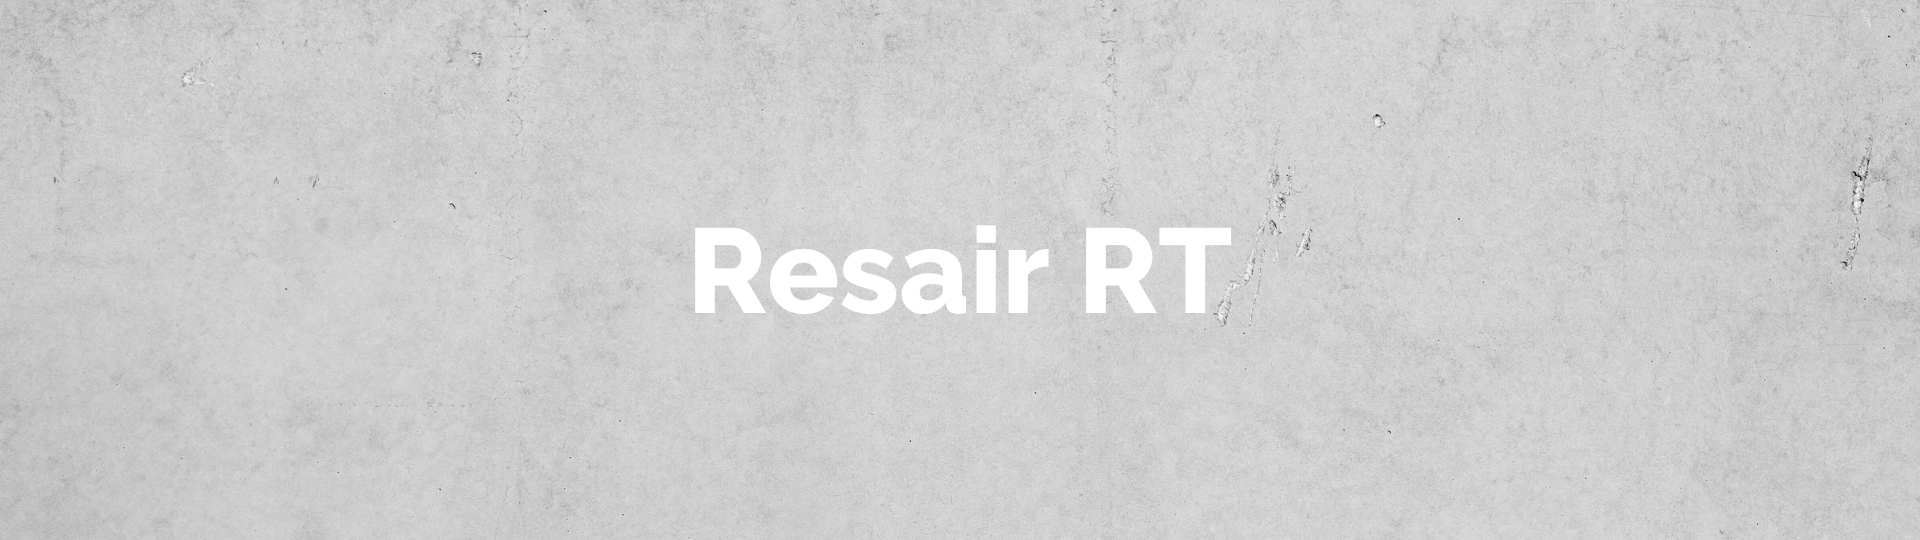 Resair RT